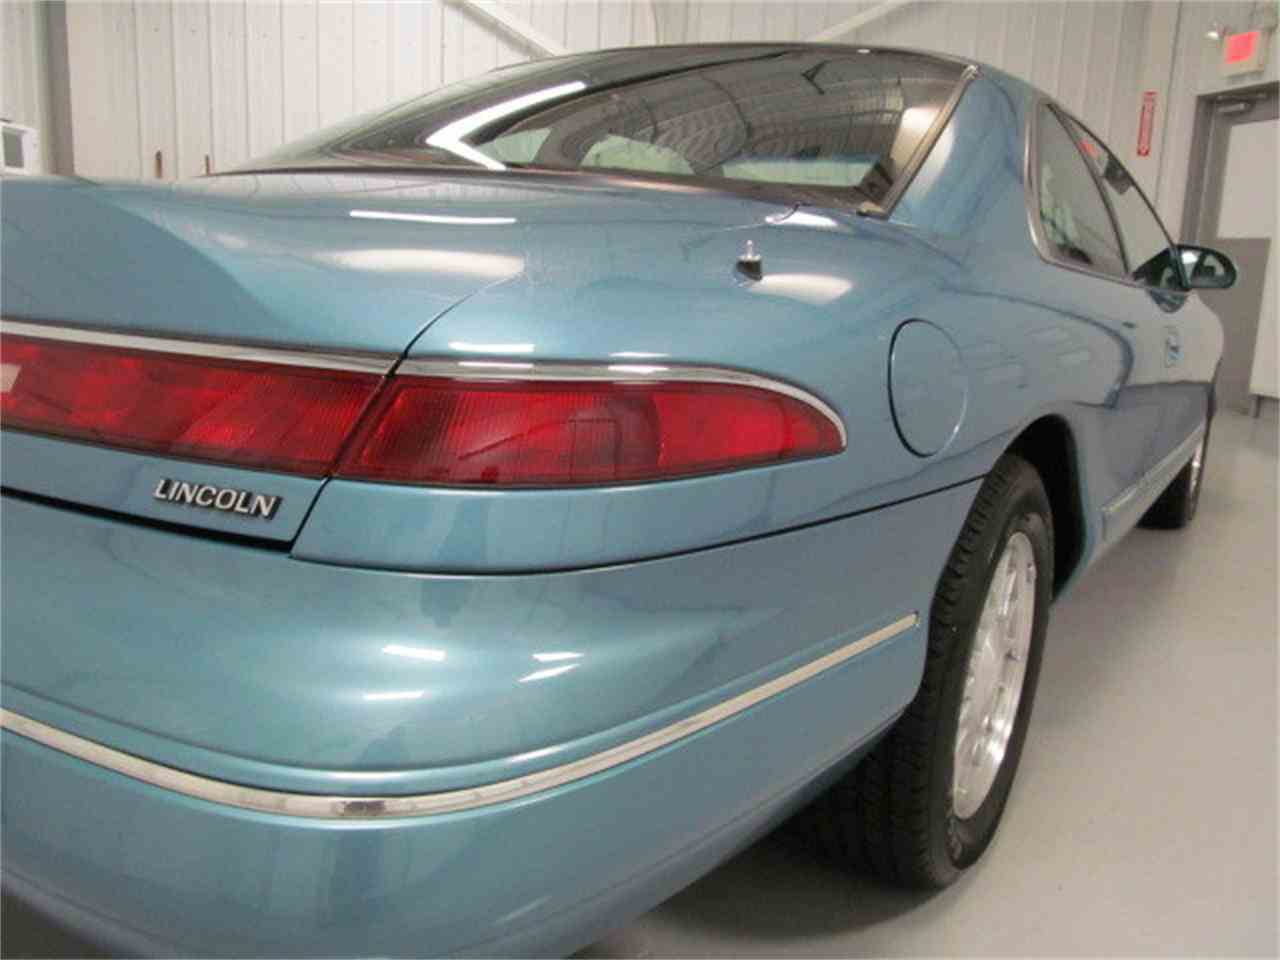 Large Picture of 1993 Lincoln Mark VIII located in Virginia - $9,900.00 - JL9Z